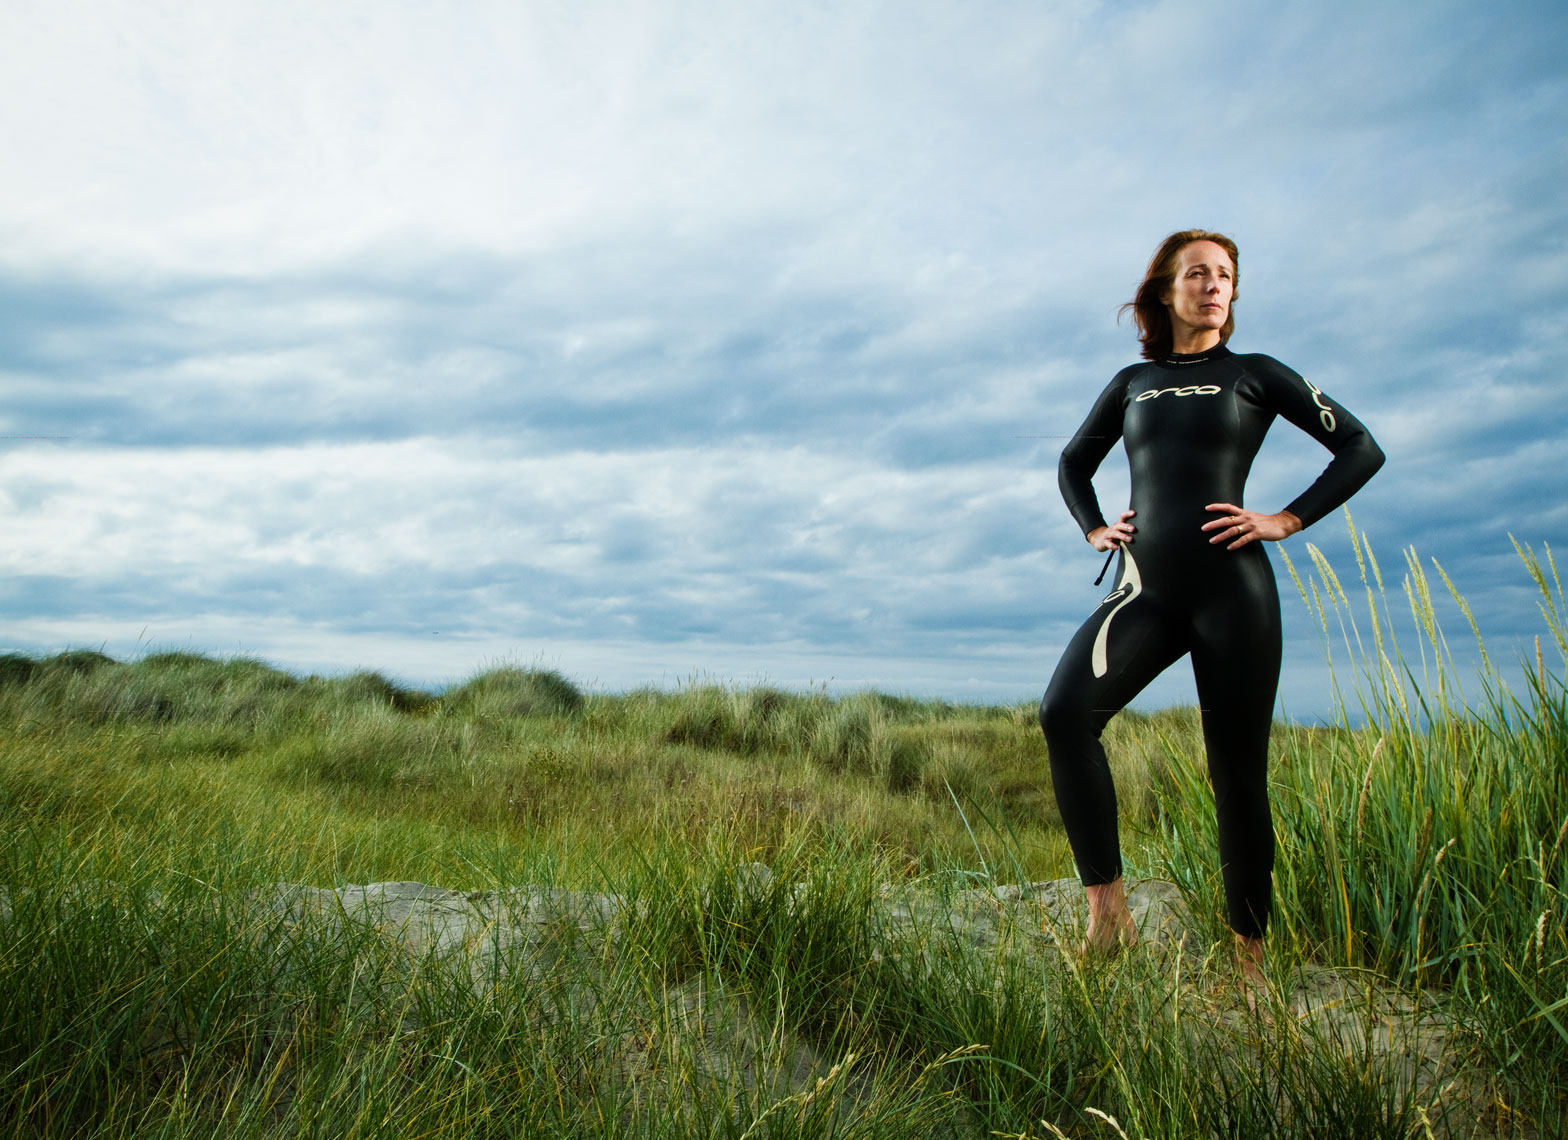 athlete portraits: strong powerful women in sport